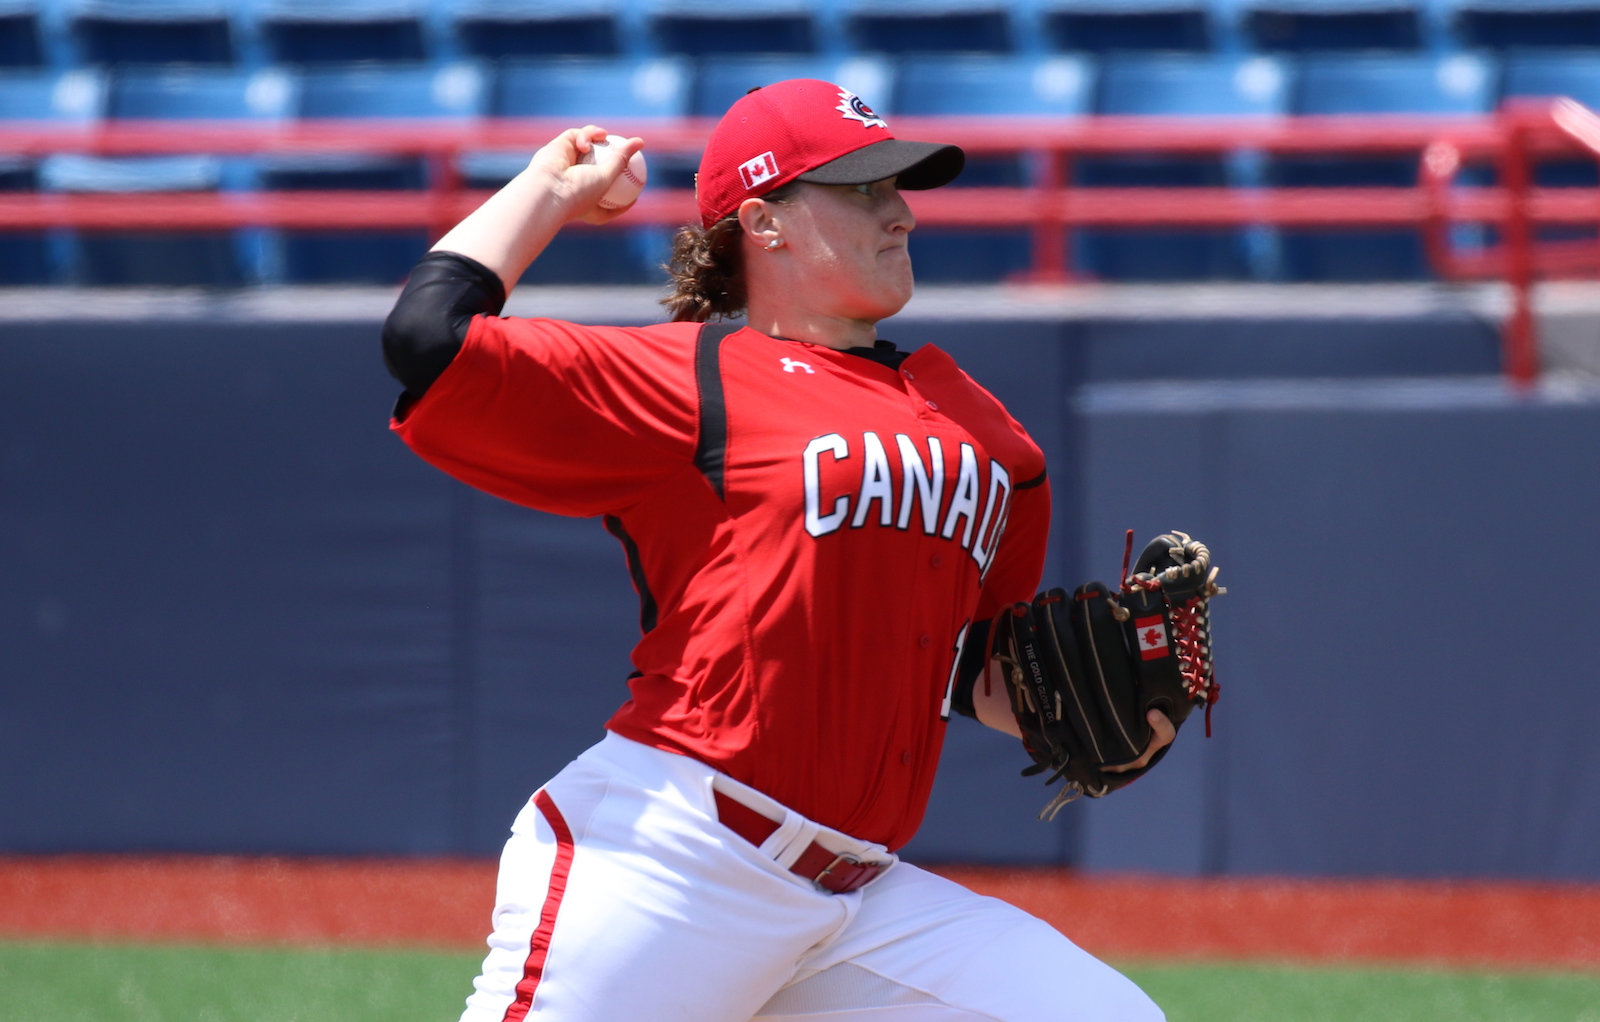 Women's Baseball World Cup: Asay leads Canada over Venezuela